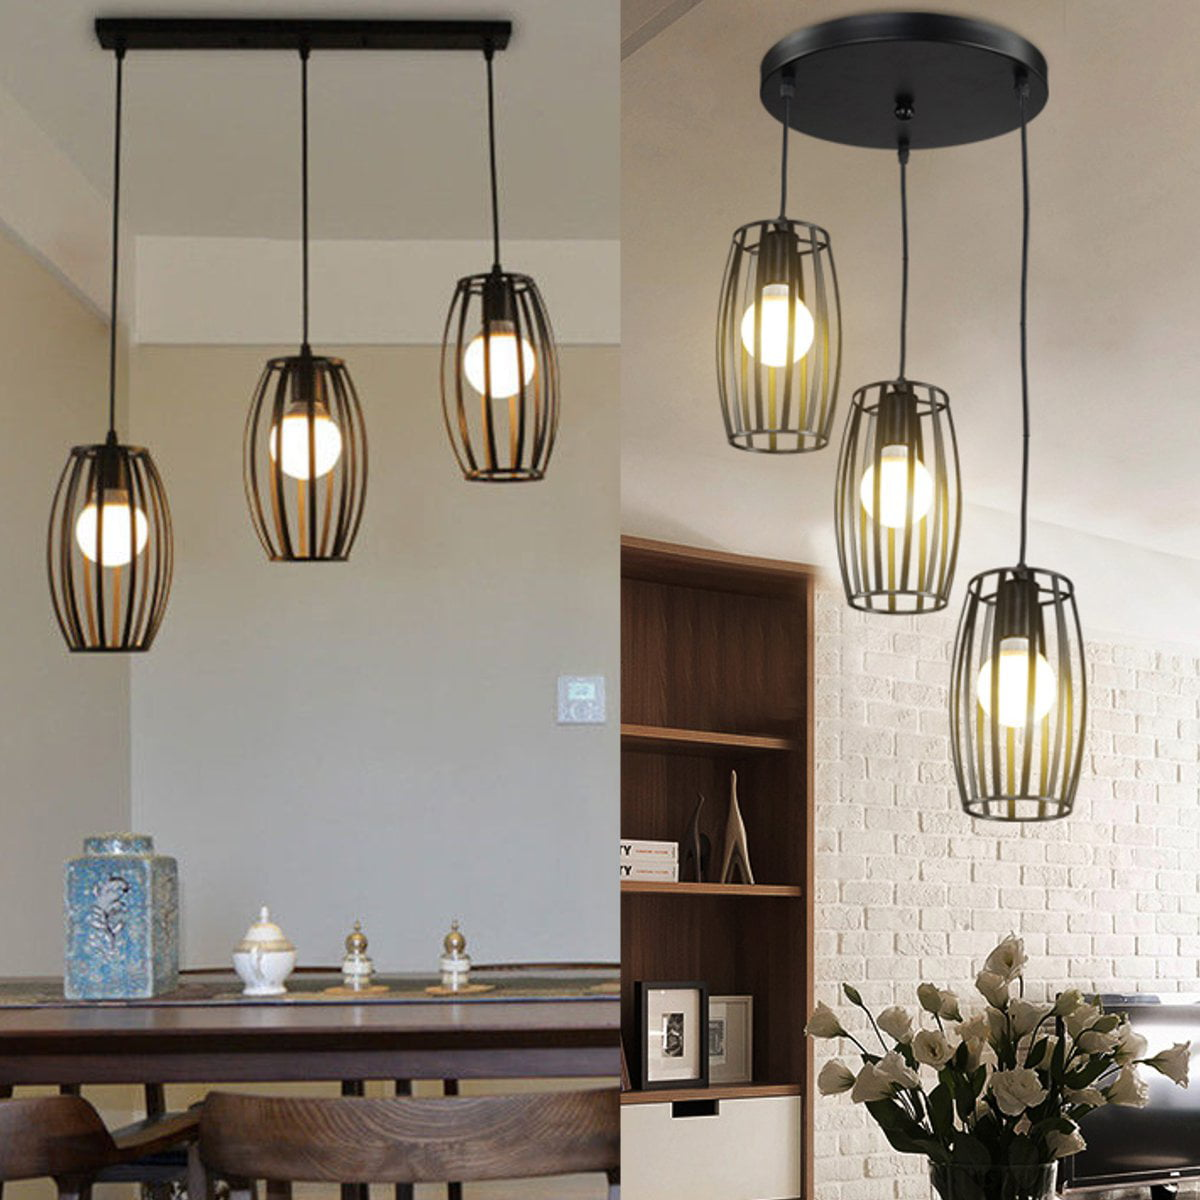 Industrial 3 Light Pendant Lighting Adjustable Hanging Light Fixtures Vintage Farmhouse Pendant Light With Metal Caged E27 Base For Kitchen Island Dining Room Living Room Hotel Walmart Com Walmart Com